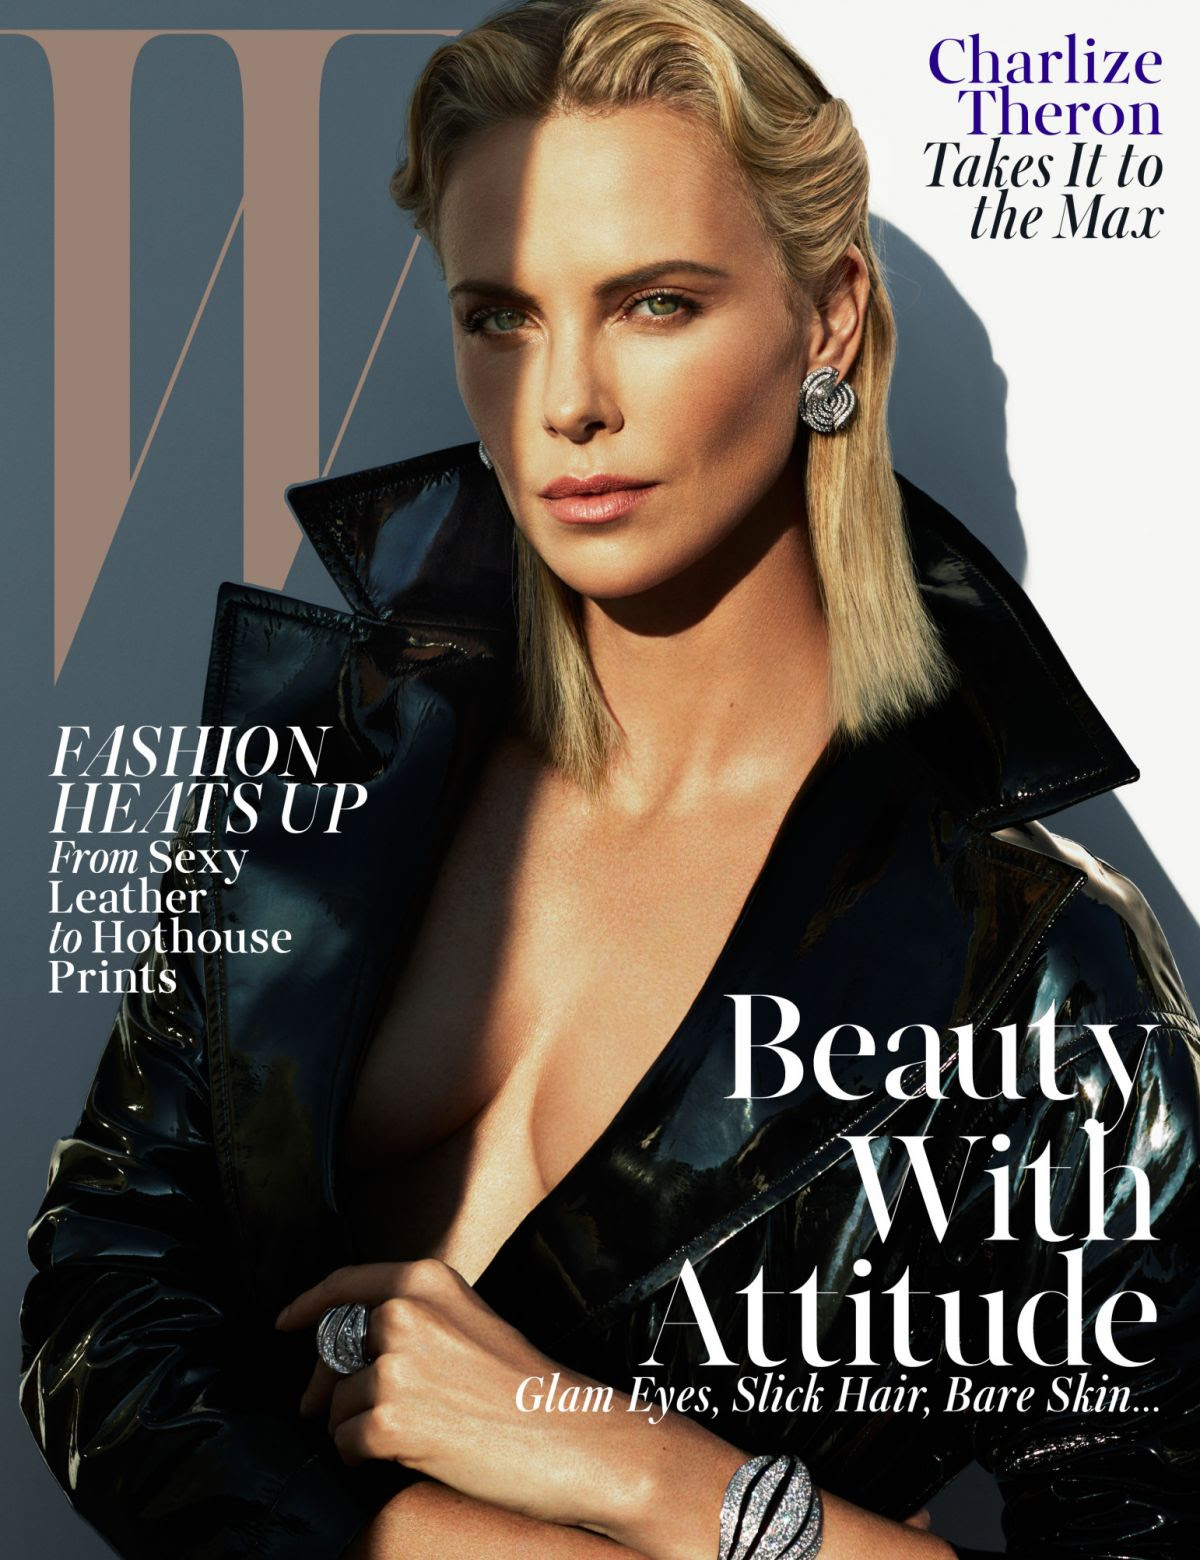 CHARLIZE THERON in W Magazine, May 2015 Issue